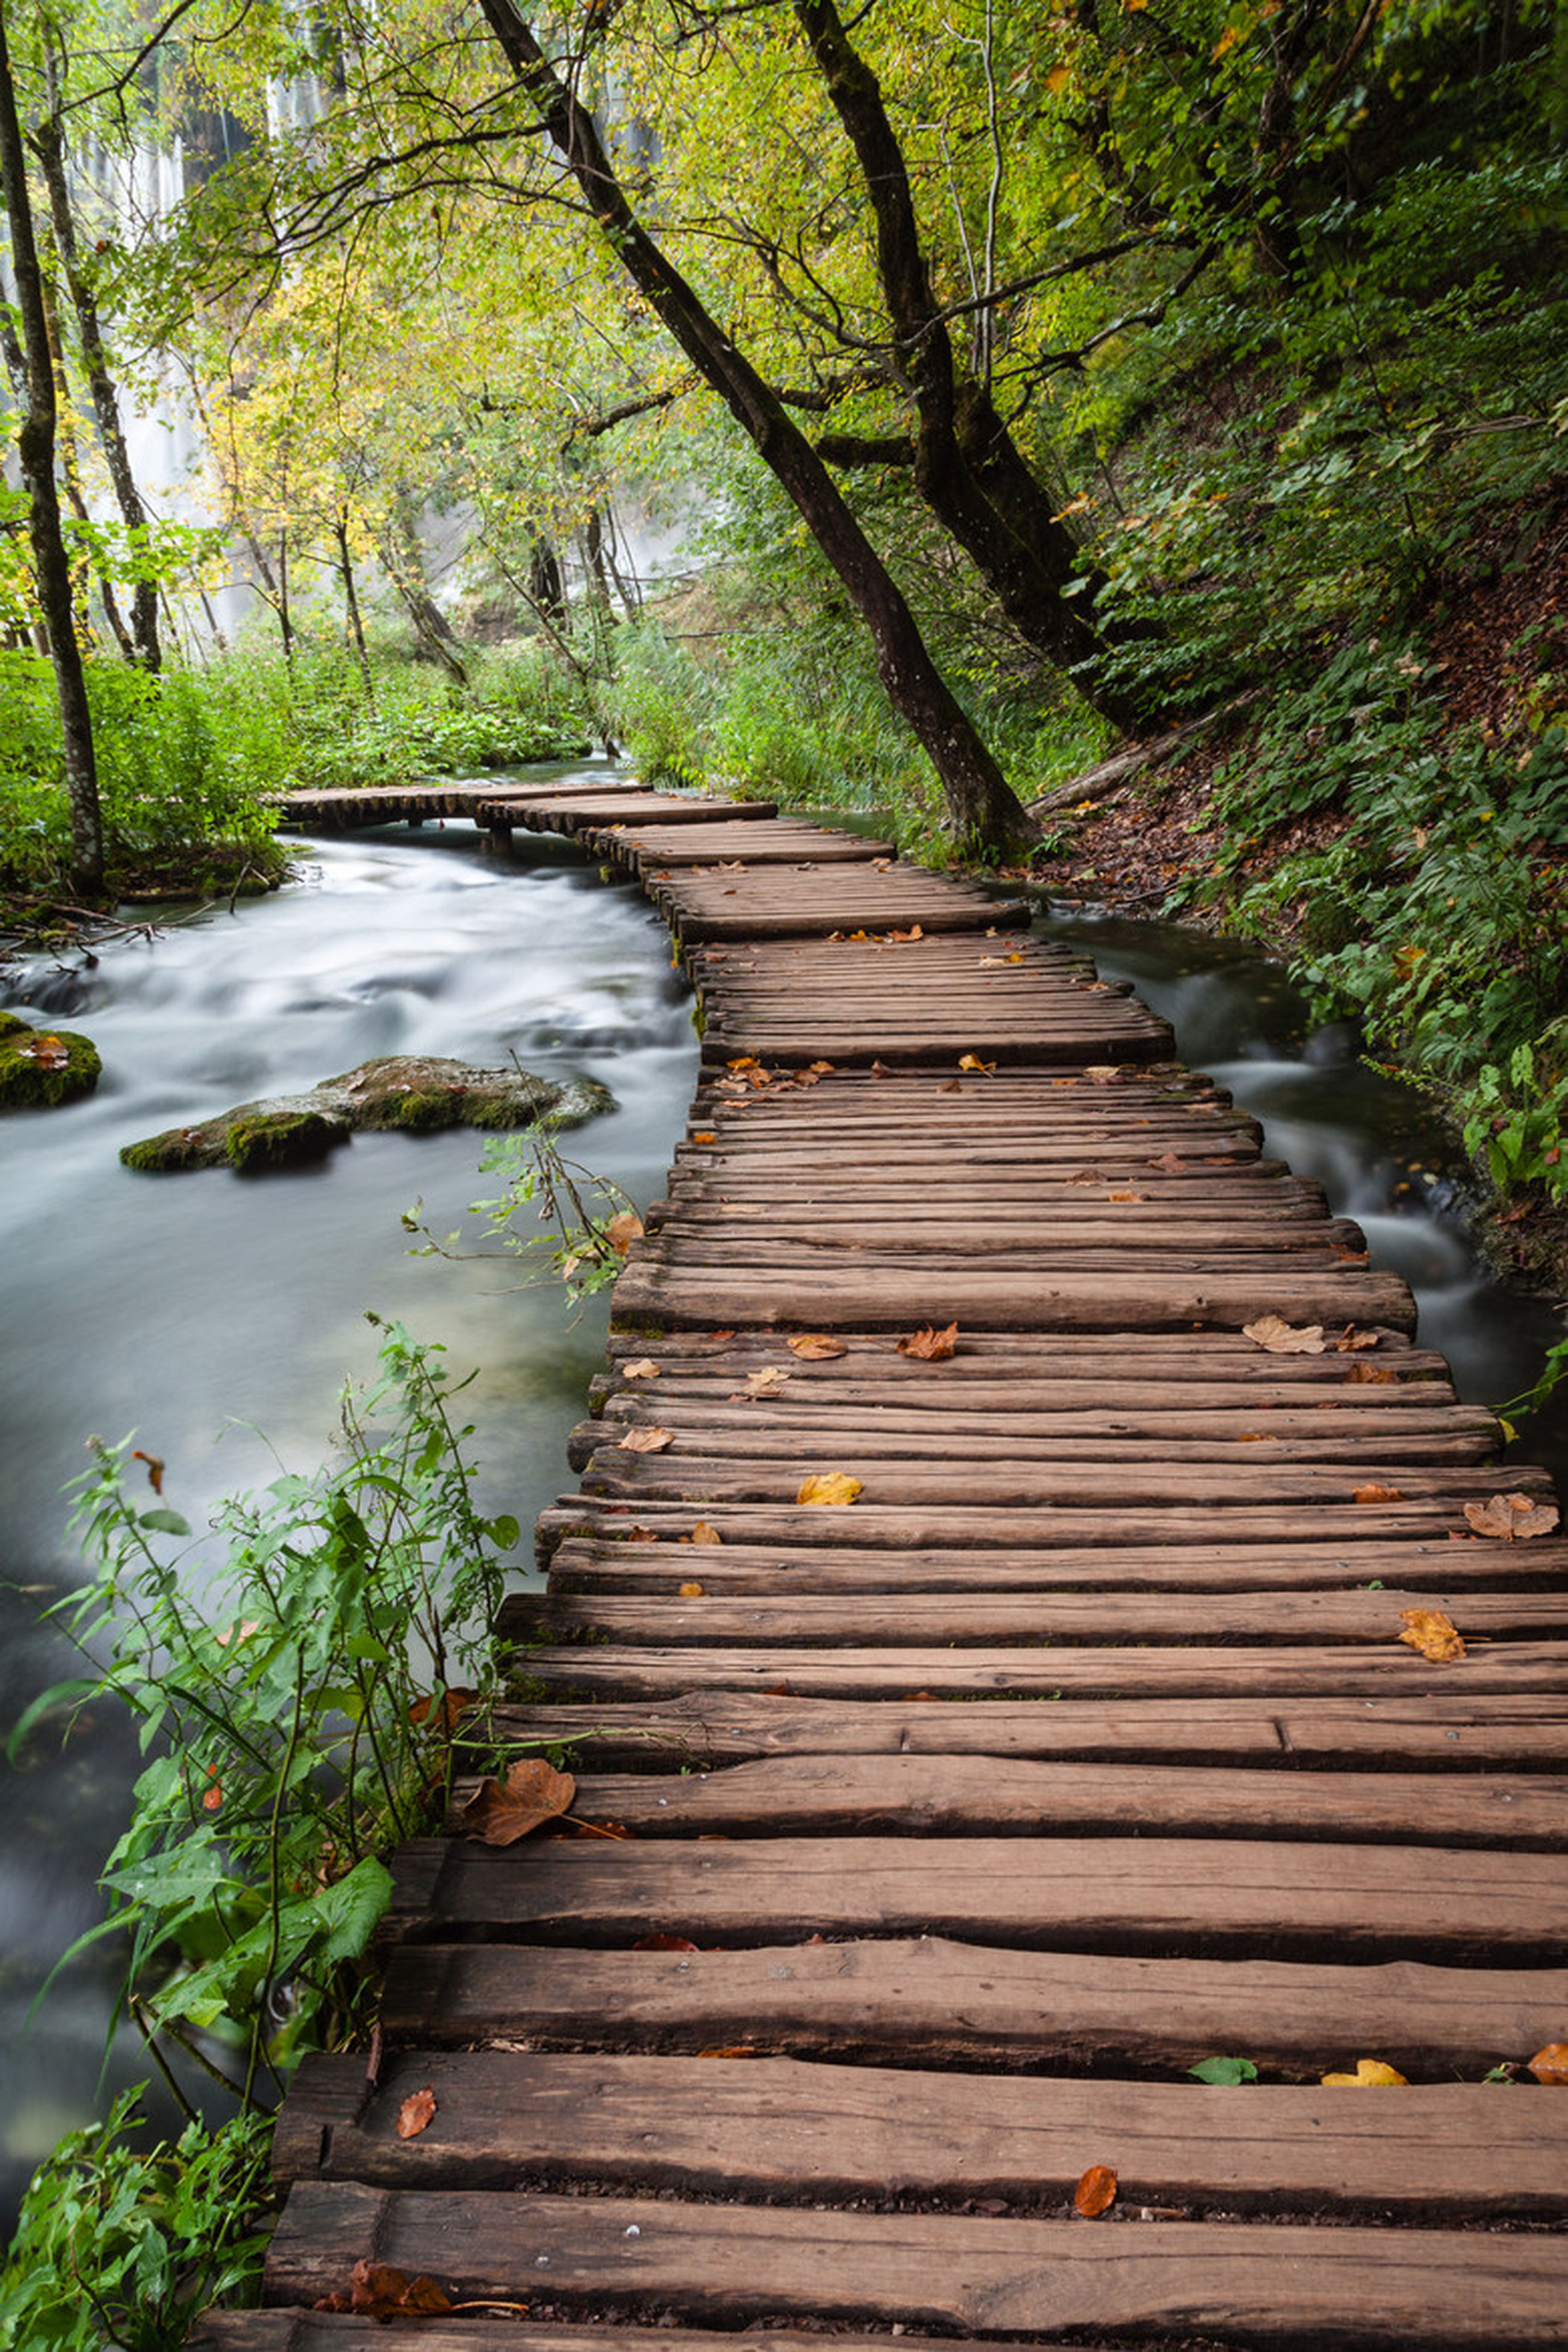 tree, the way forward, wood - material, boardwalk, tranquility, nature, growth, water, forest, green color, wood, wooden, tranquil scene, beauty in nature, footbridge, plant, leaf, park - man made space, outdoors, day